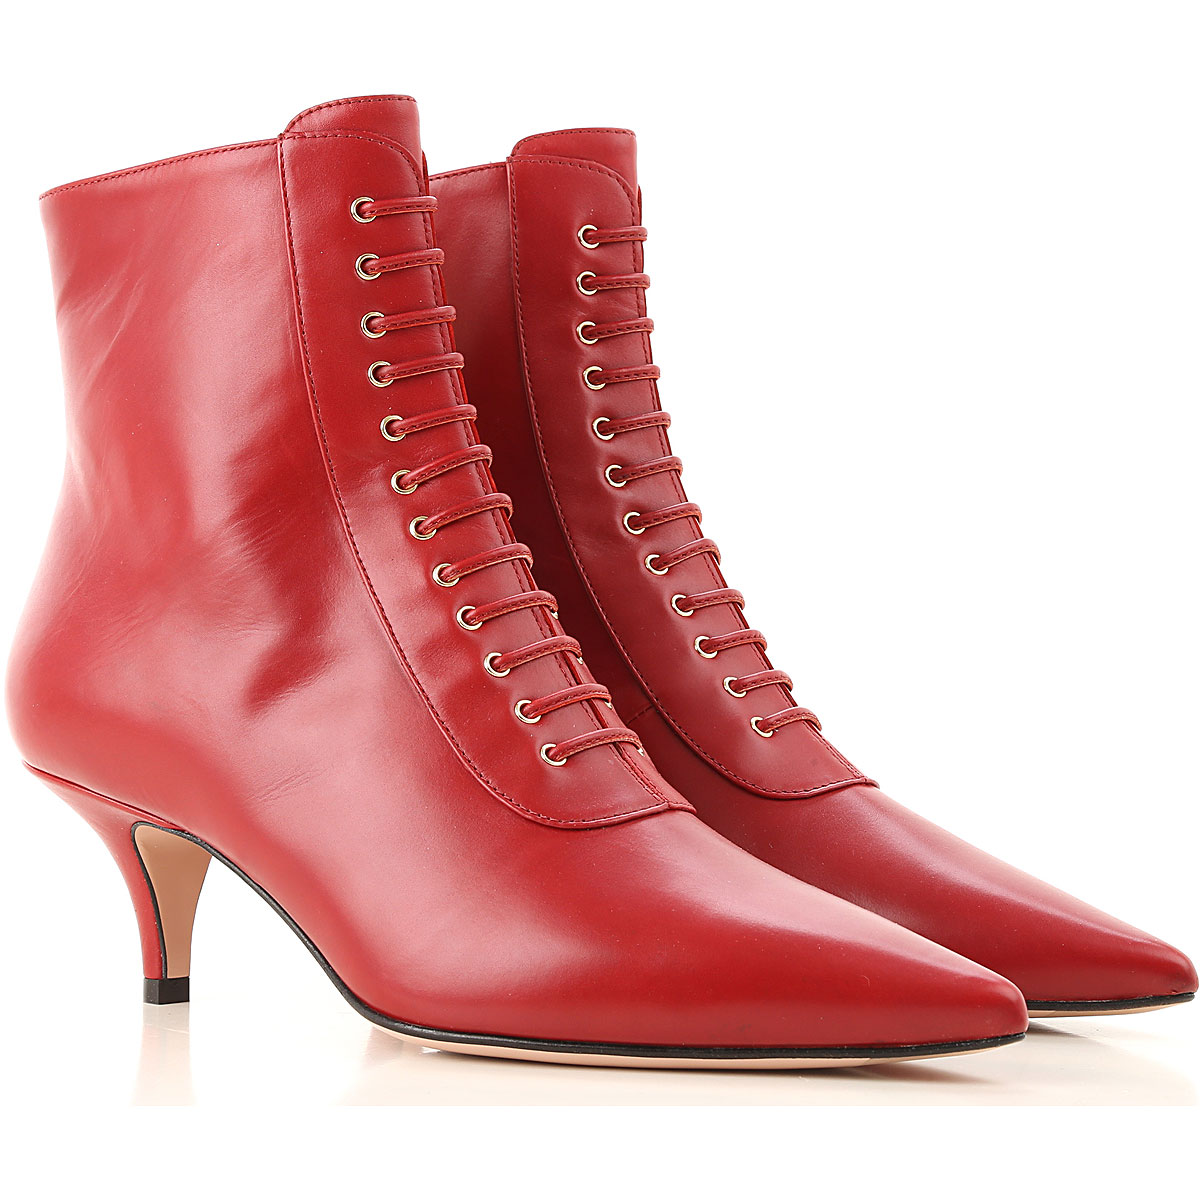 Roberto Festa Boots for Women, Booties On Sale, Dark Amaranth Red, Leather, 2019, 7 8 9